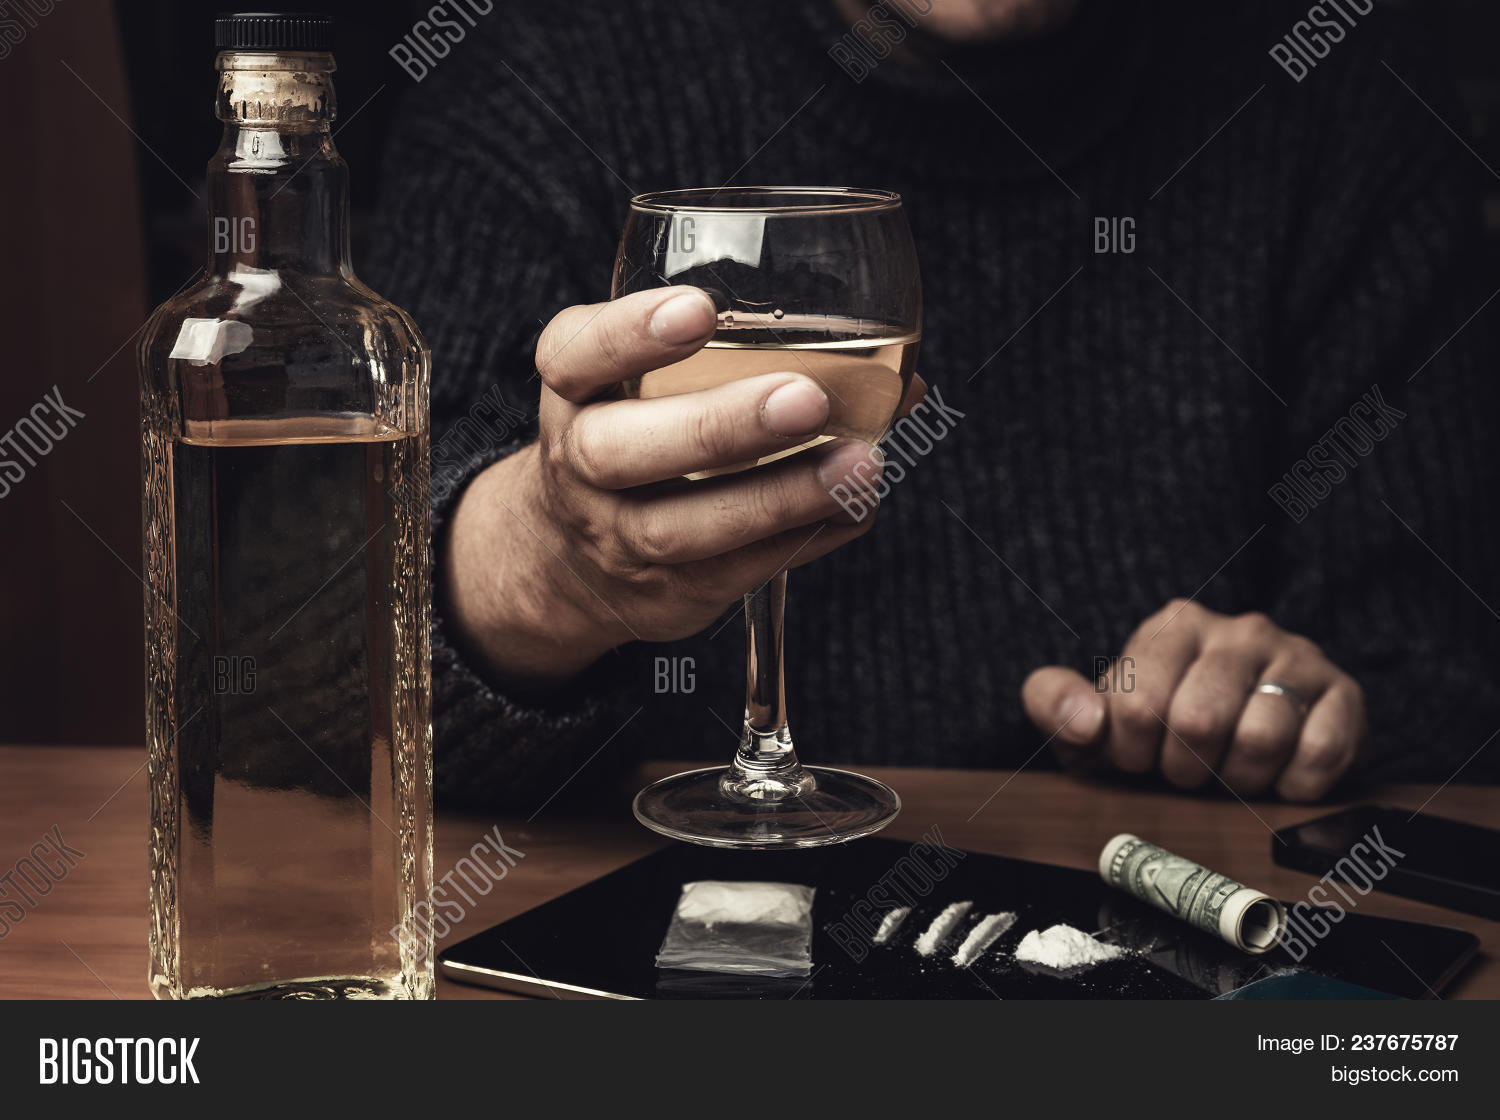 Man holds glass of whiskey and uses cocaine drugs. Drug abuse and alcoholism concept, toned